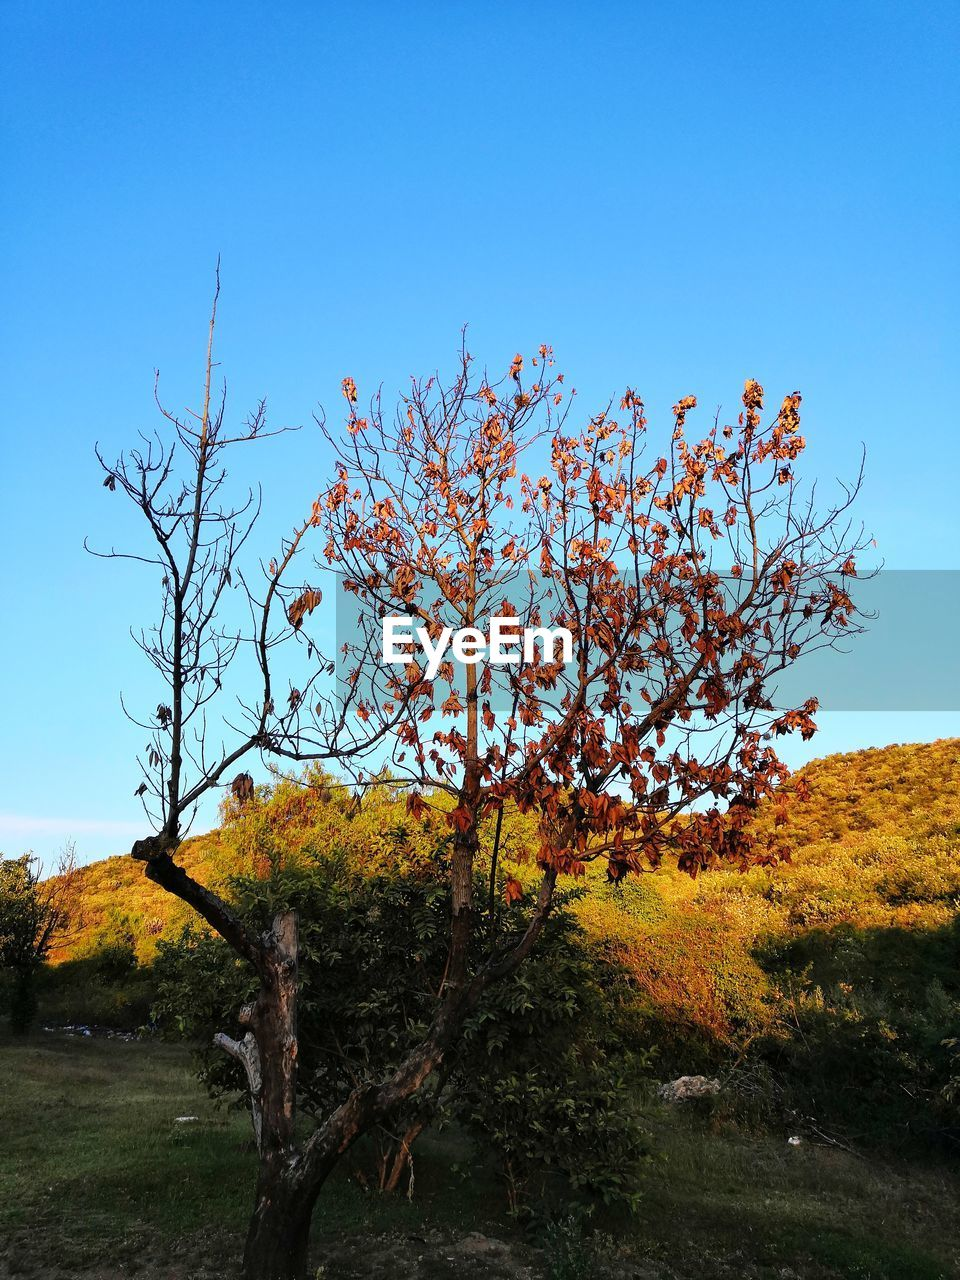 plant, sky, beauty in nature, tree, growth, tranquility, nature, autumn, land, field, tranquil scene, scenics - nature, no people, day, clear sky, landscape, environment, outdoors, change, branch, fall